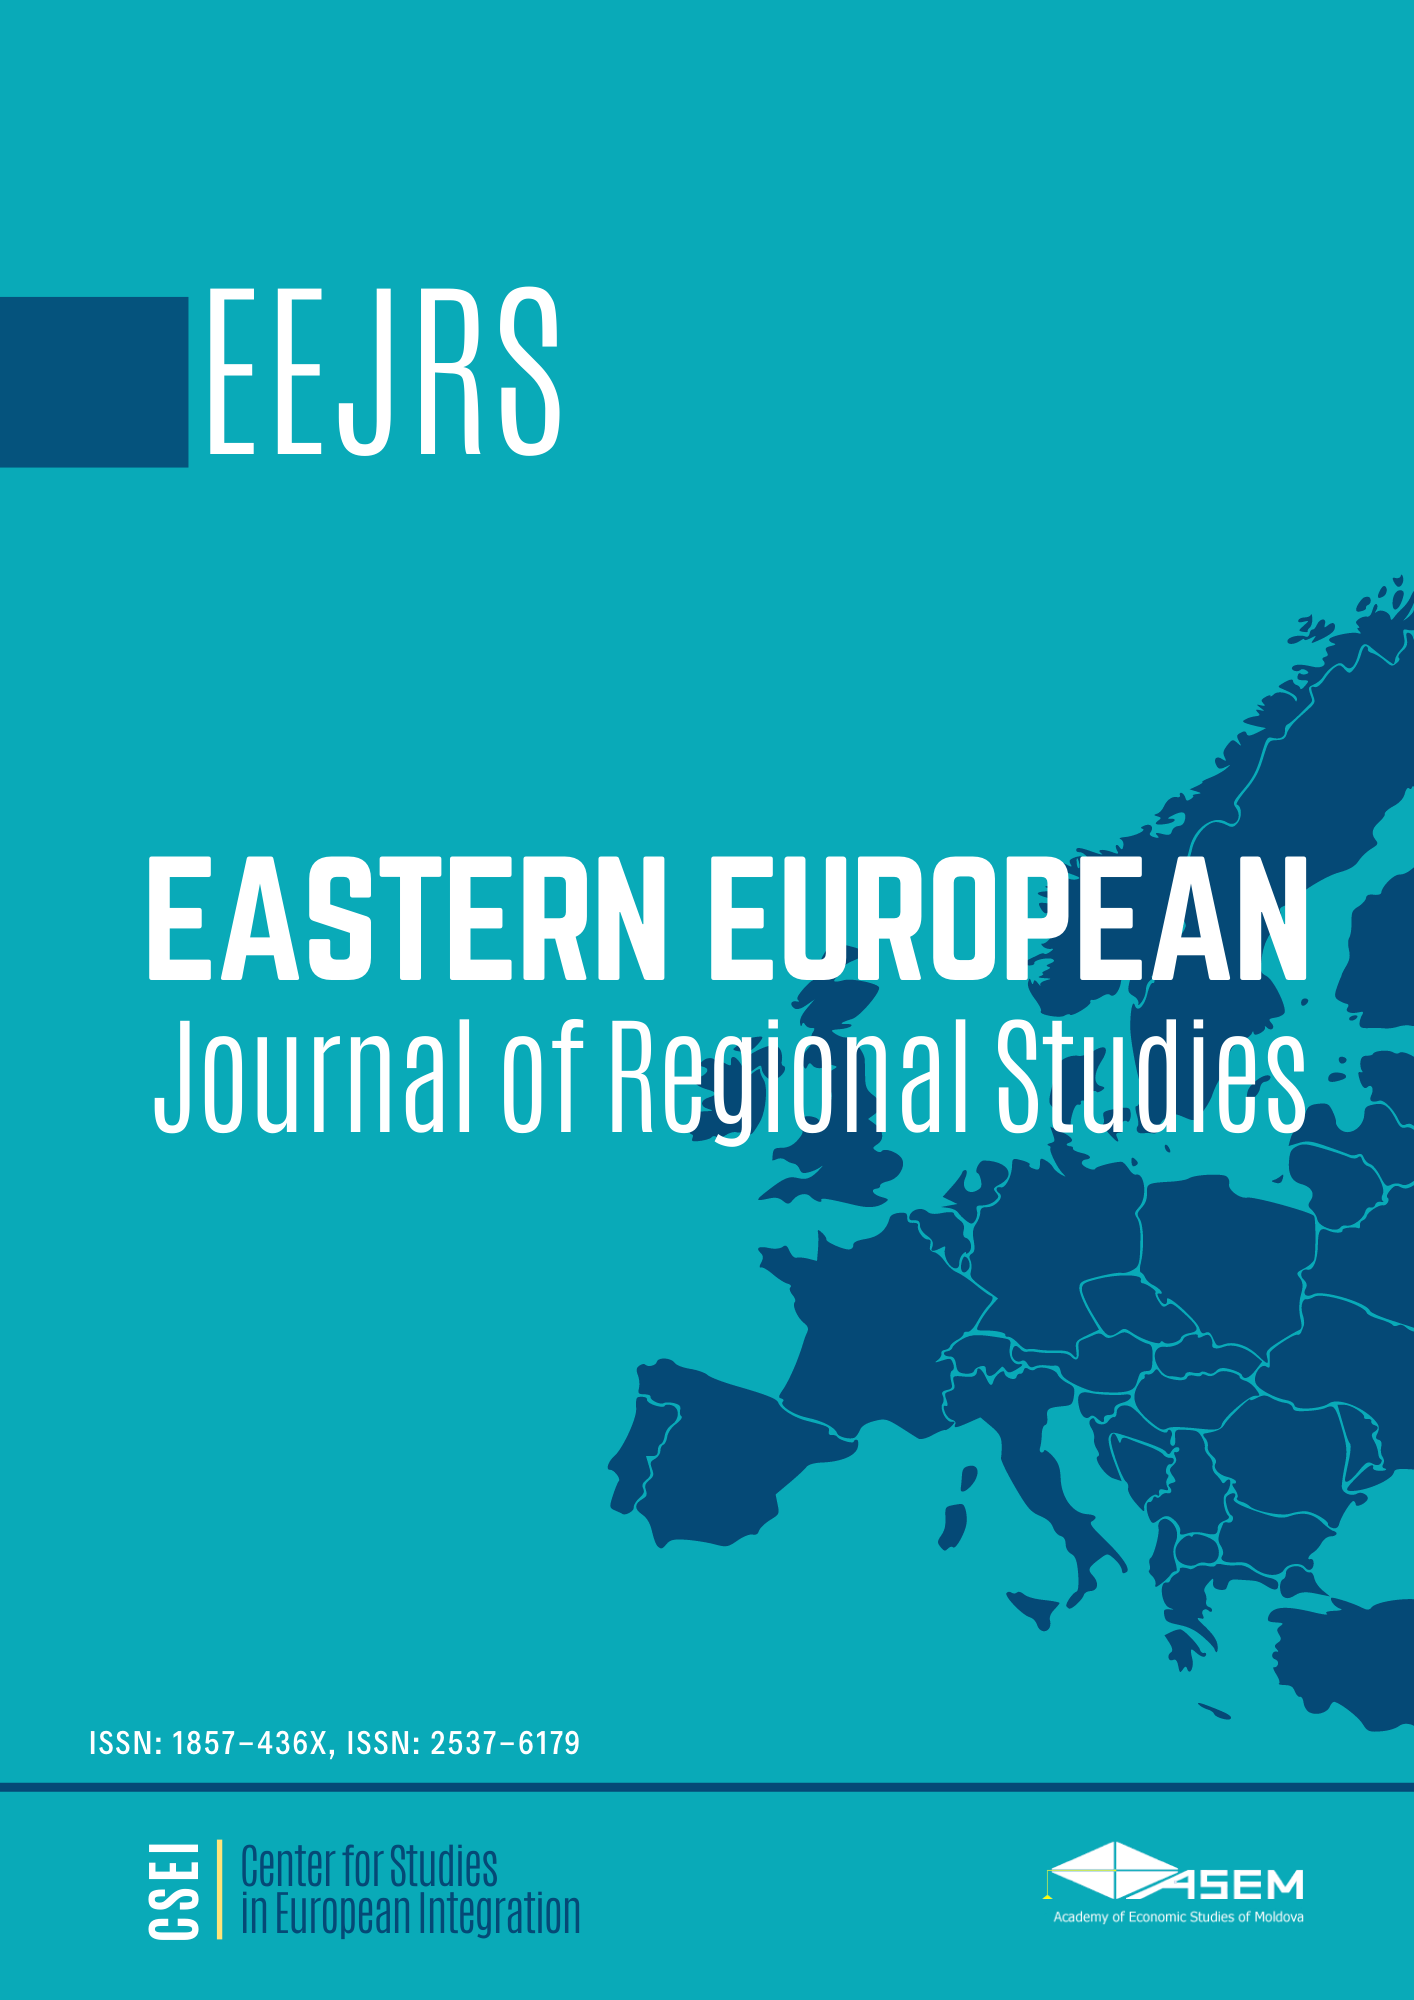 Eastern European Journal for Regional Studies (EEJRS)